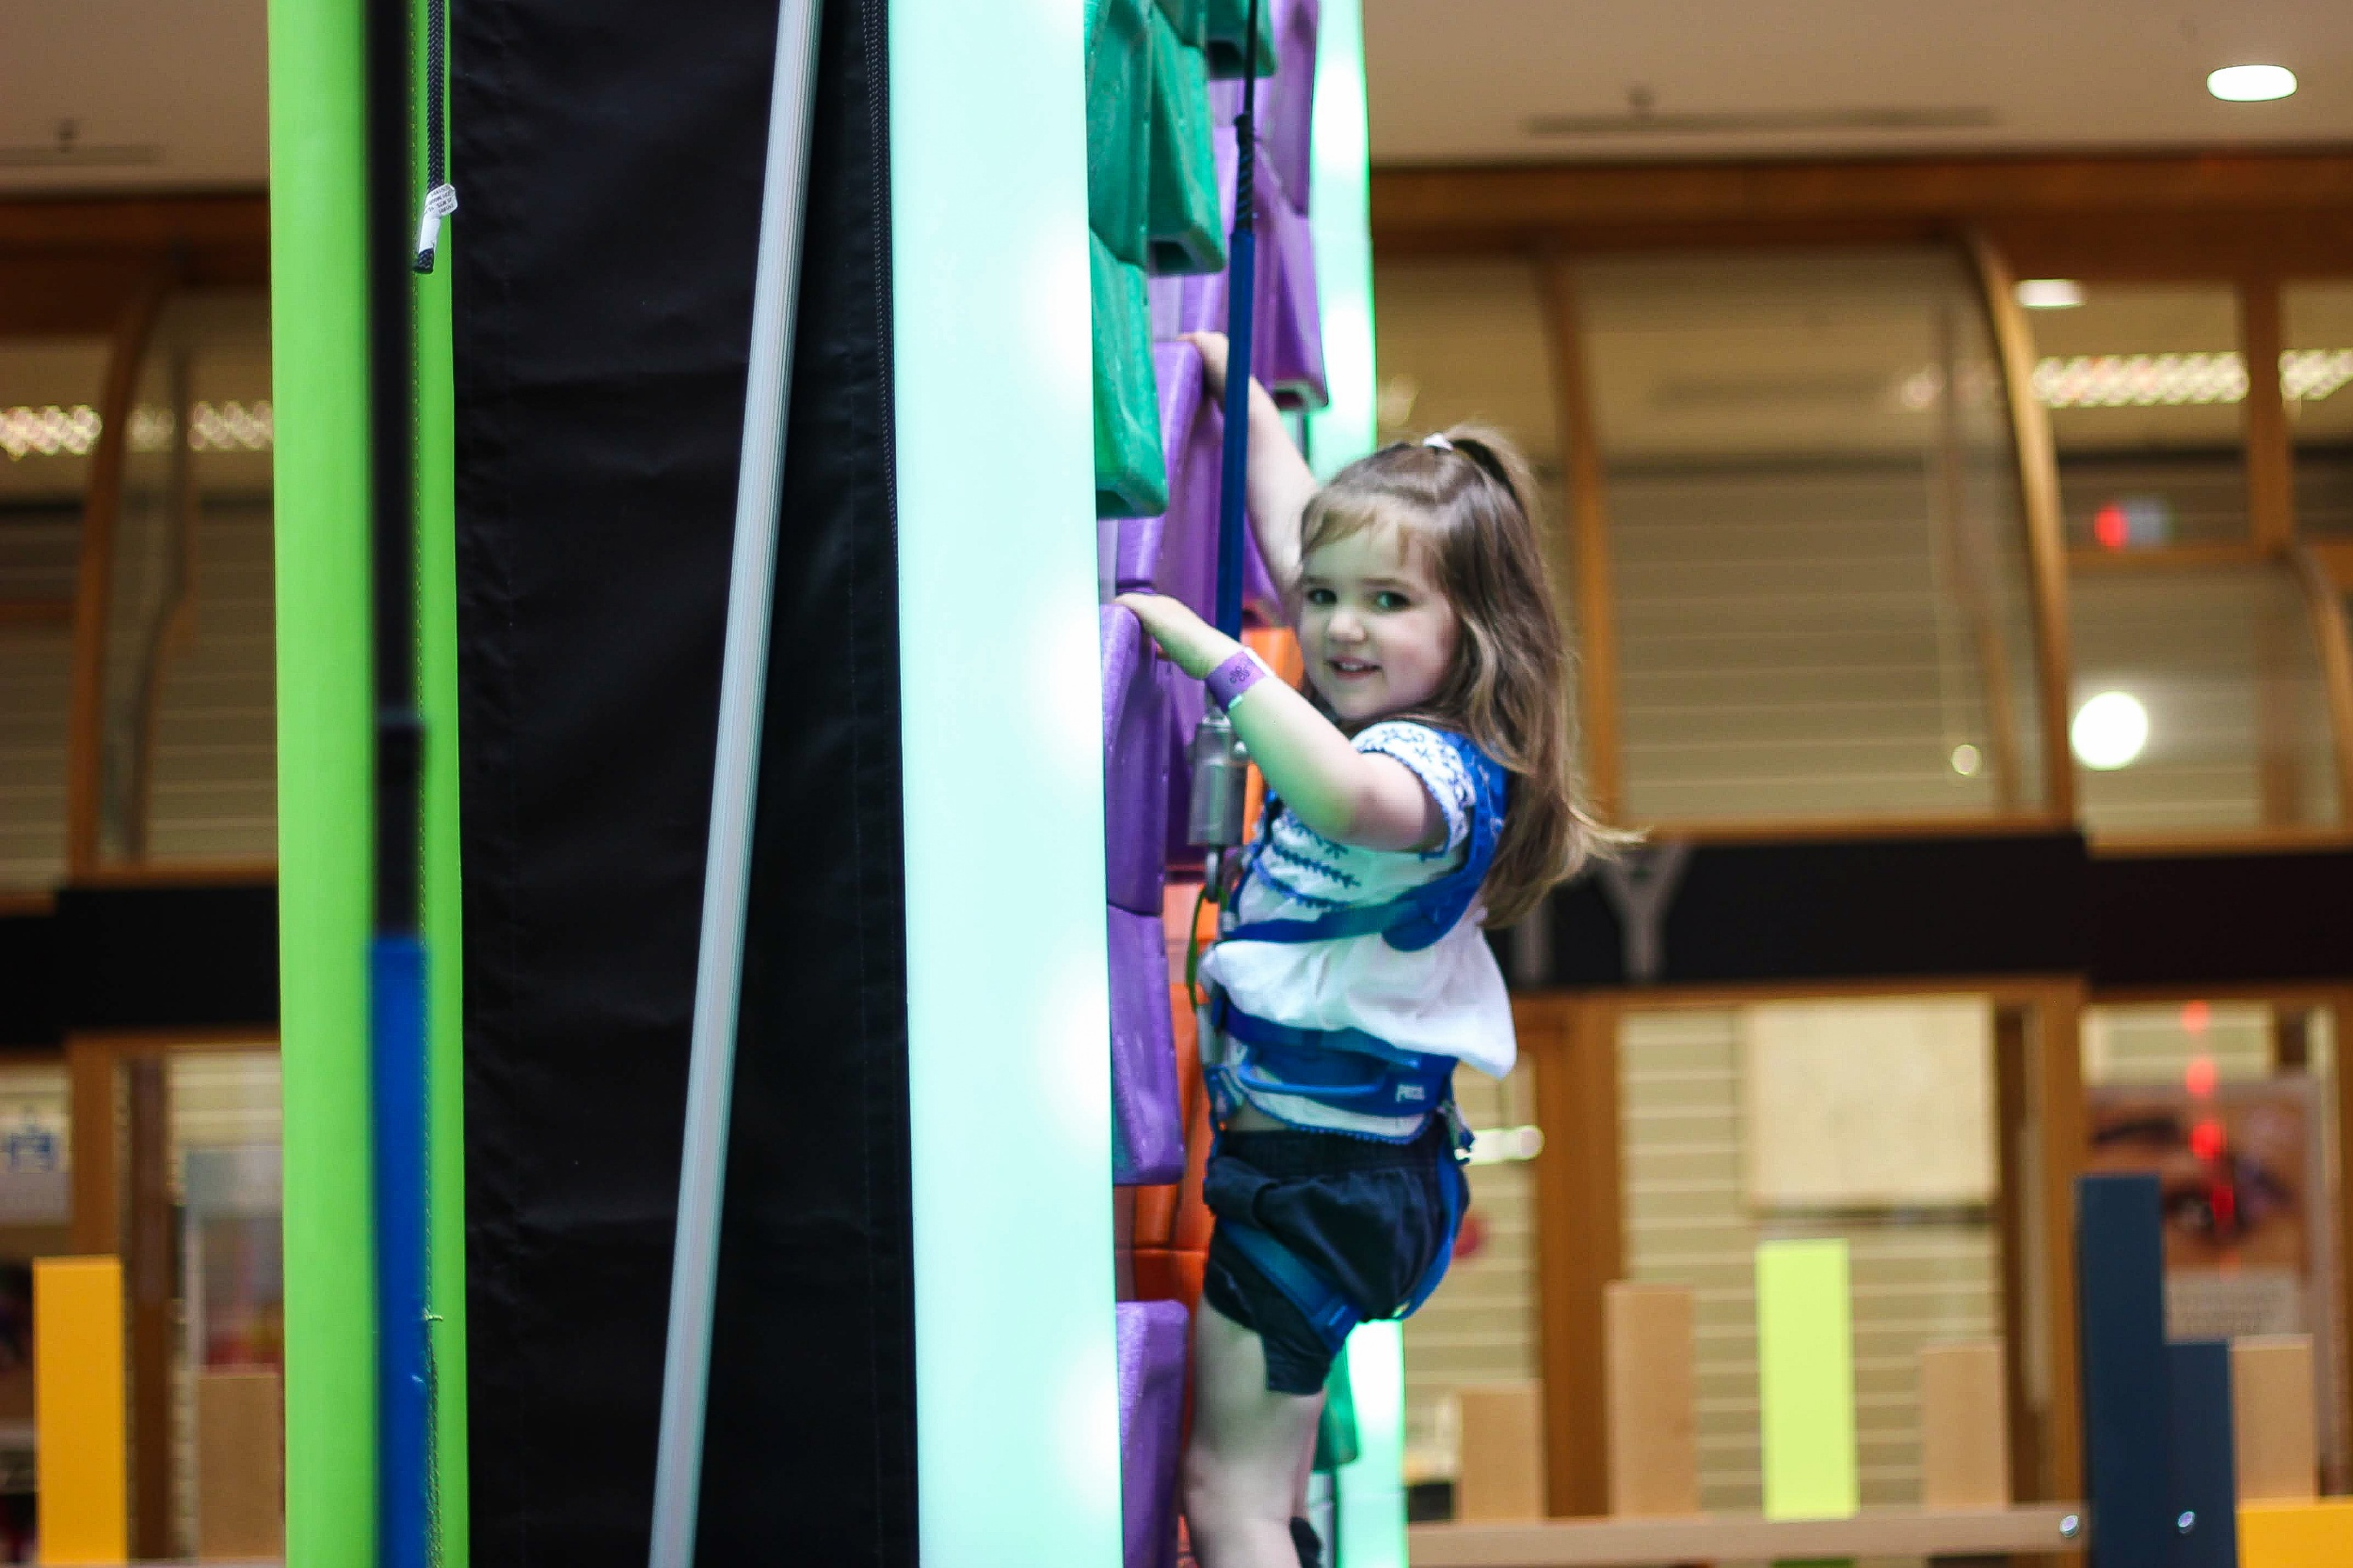 Clip and Climb at Metrocentre